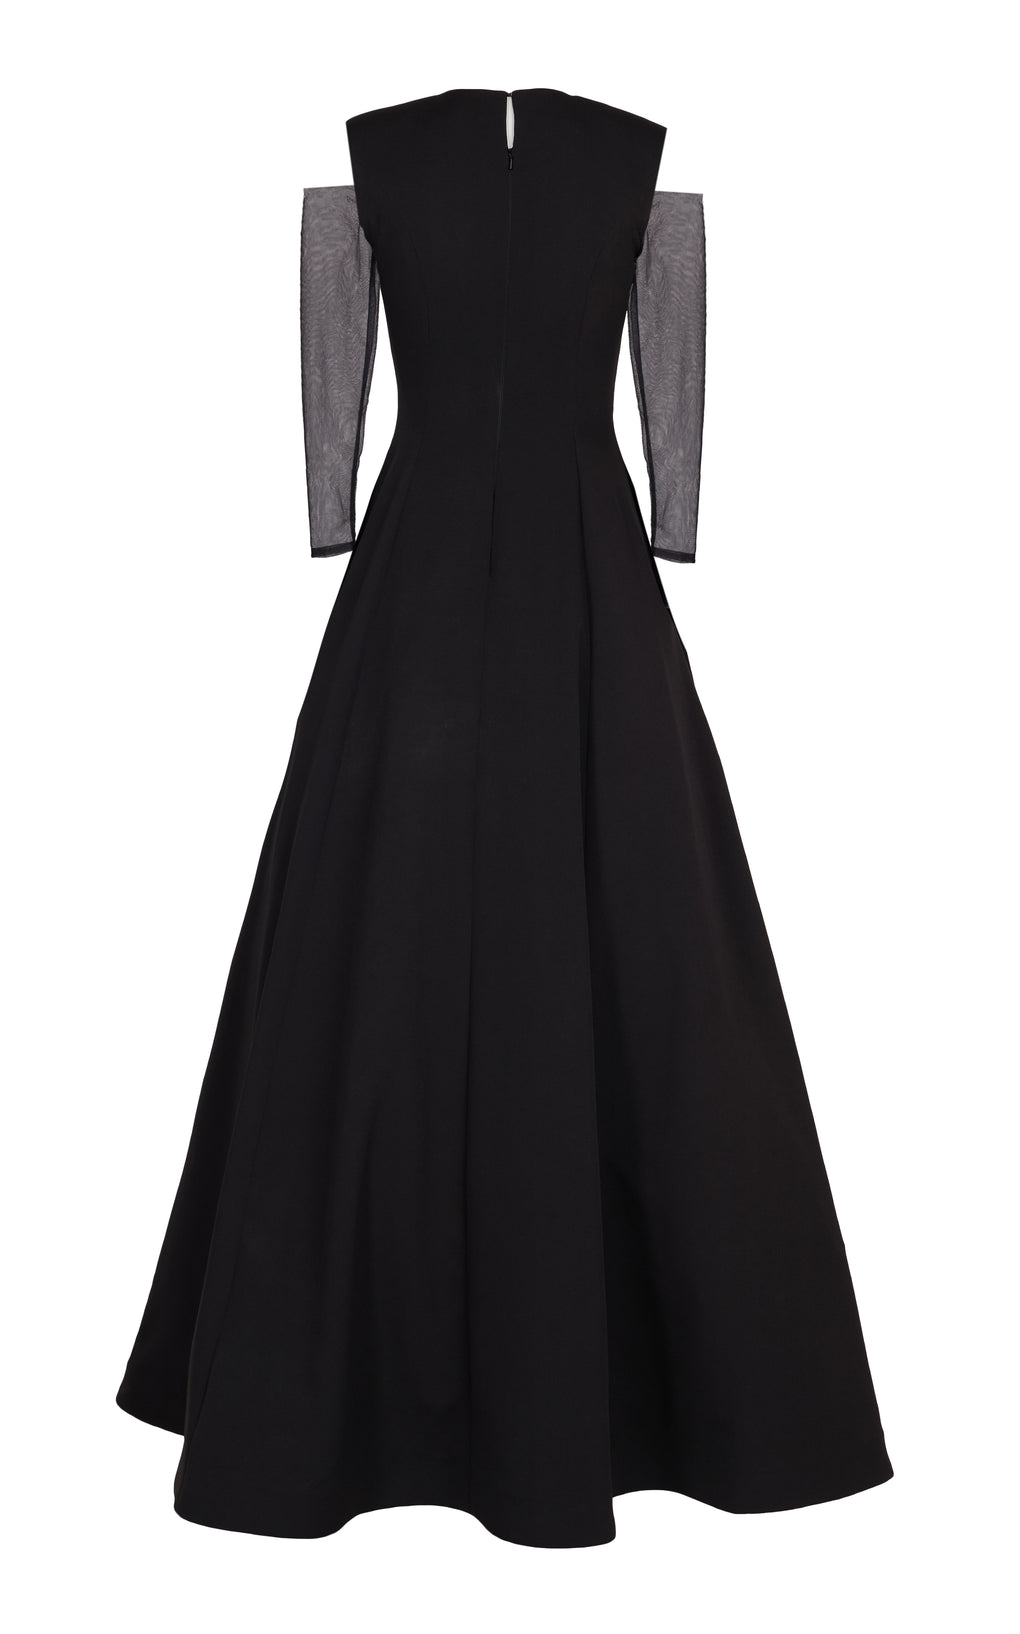 Black princes cut full gown